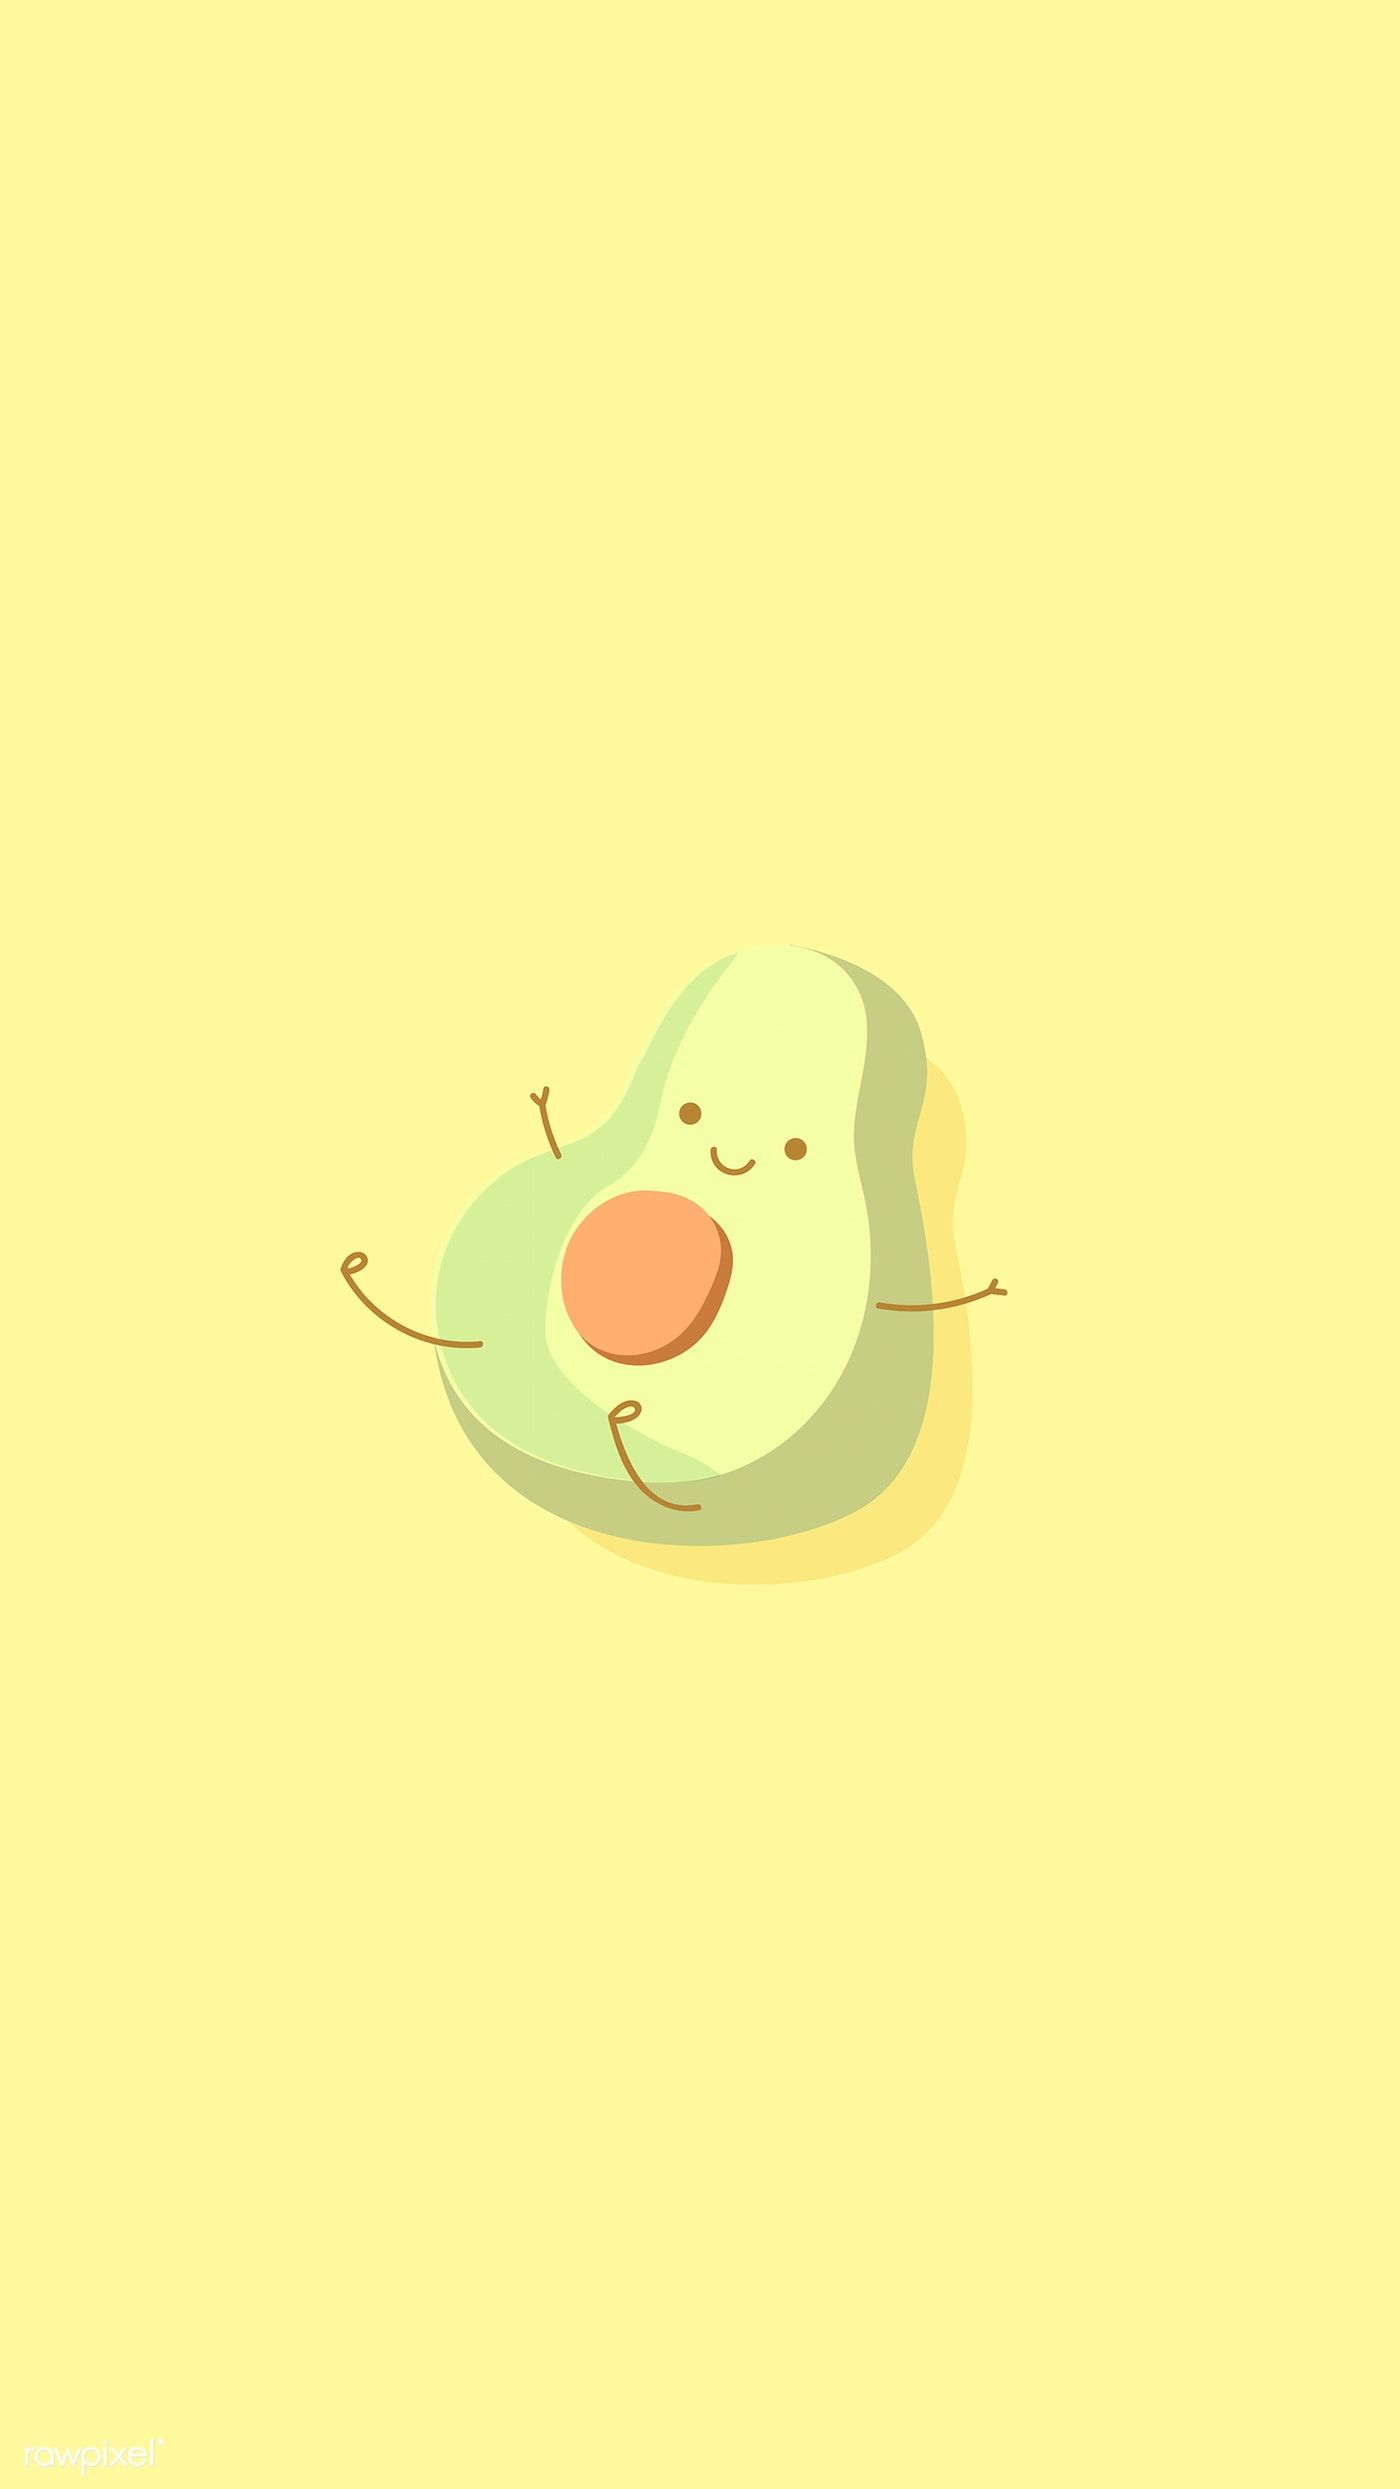 Half An Avocado Character Phone Background Vector Free Image By Rawpixel Com Techi In 2020 Cute Cartoon Wallpapers Avocado Cartoon Cartoon Wallpaper